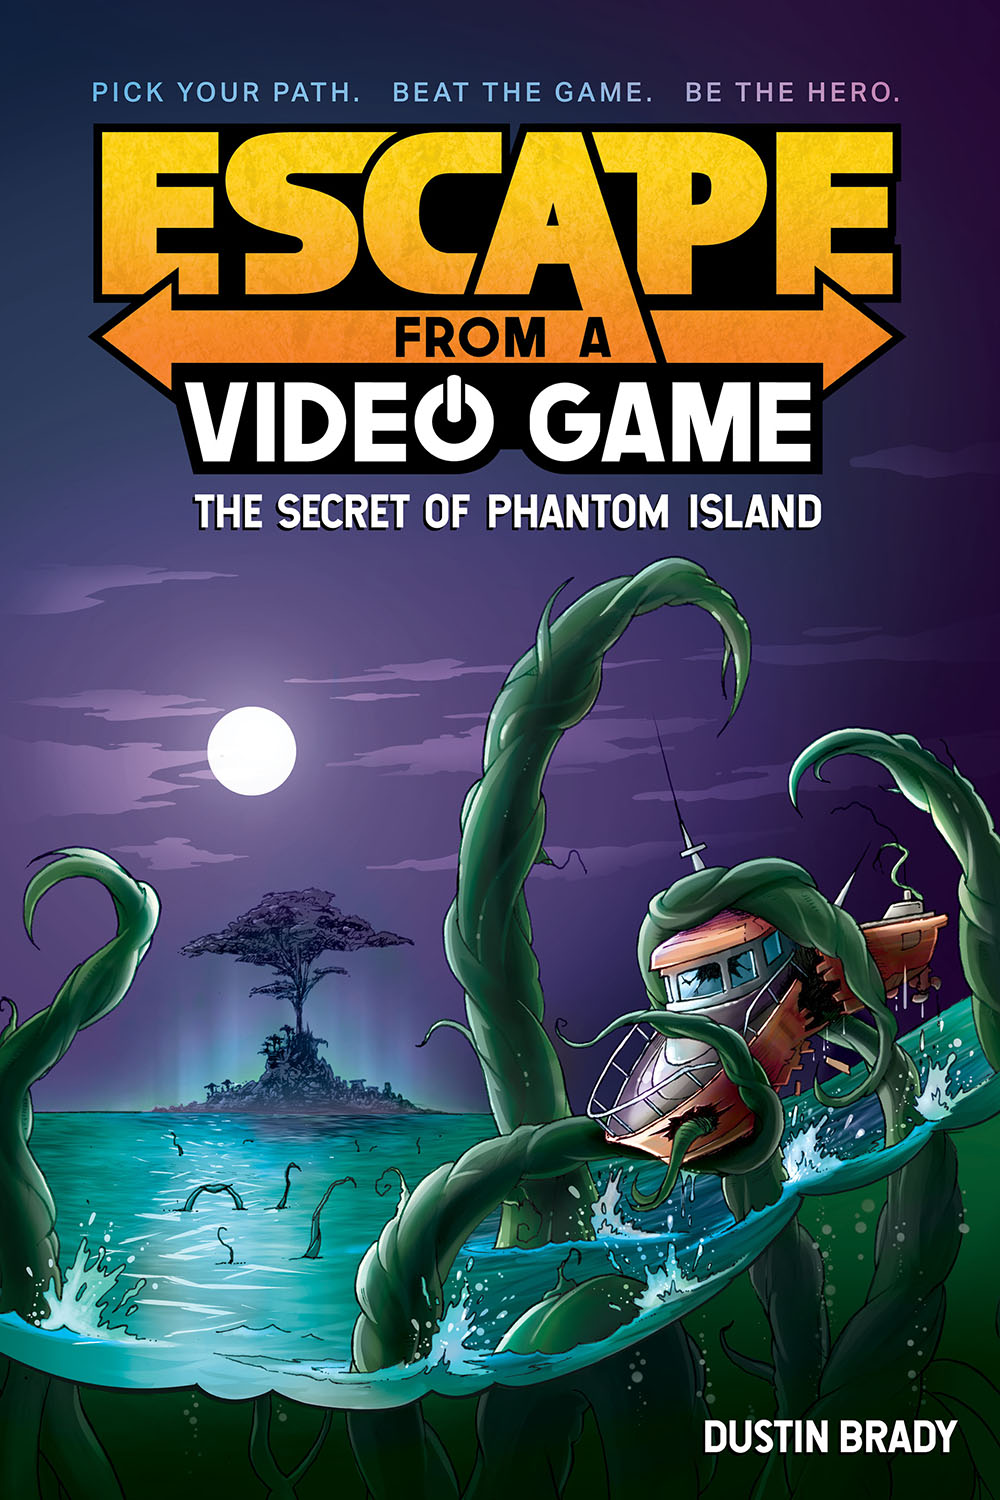 Escape from a Video Game / Dustin Brady